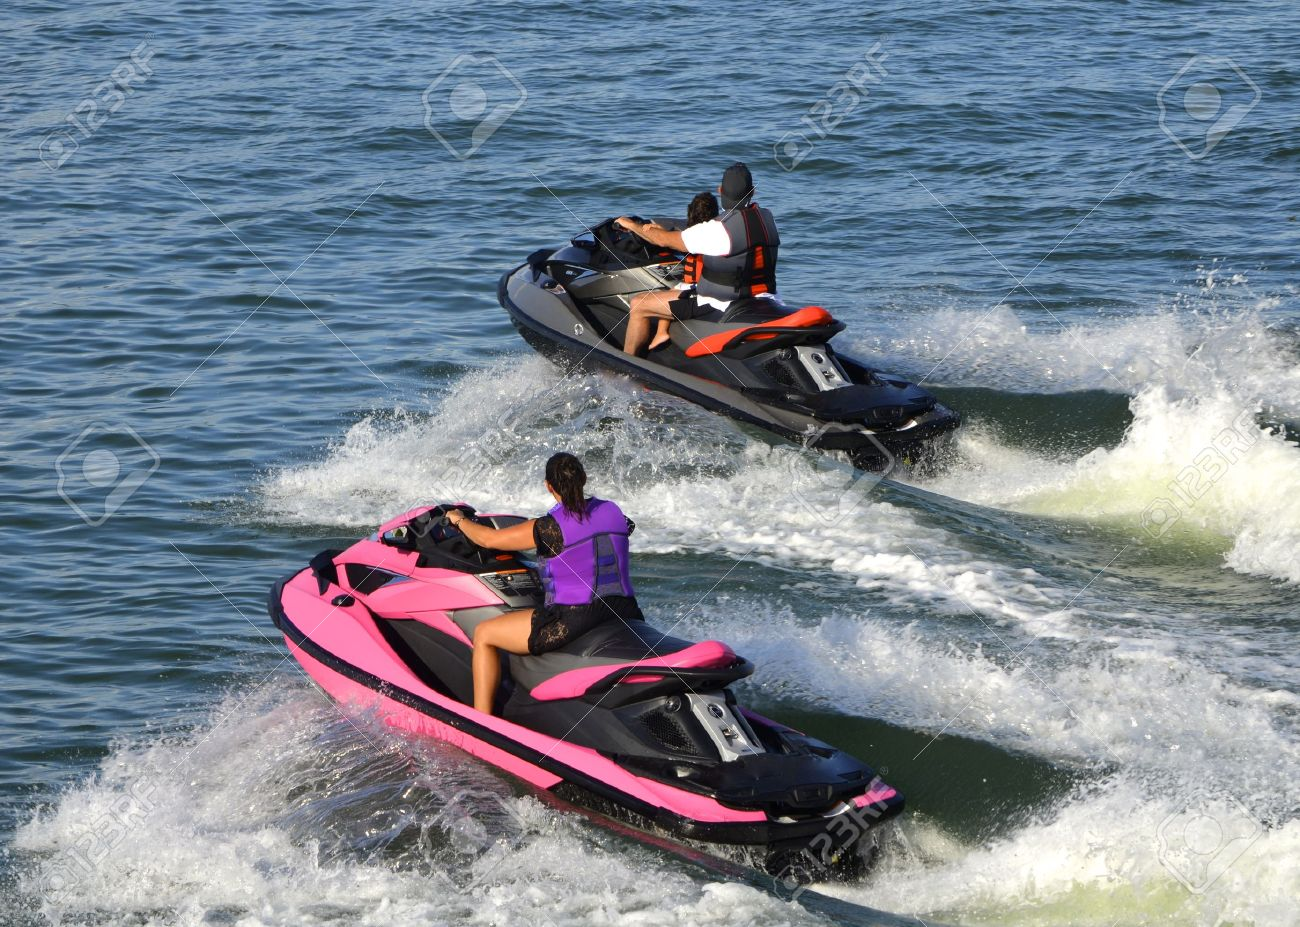 naked-females-on-jet-skis-free-hot-mature-porn-thumb-galleries